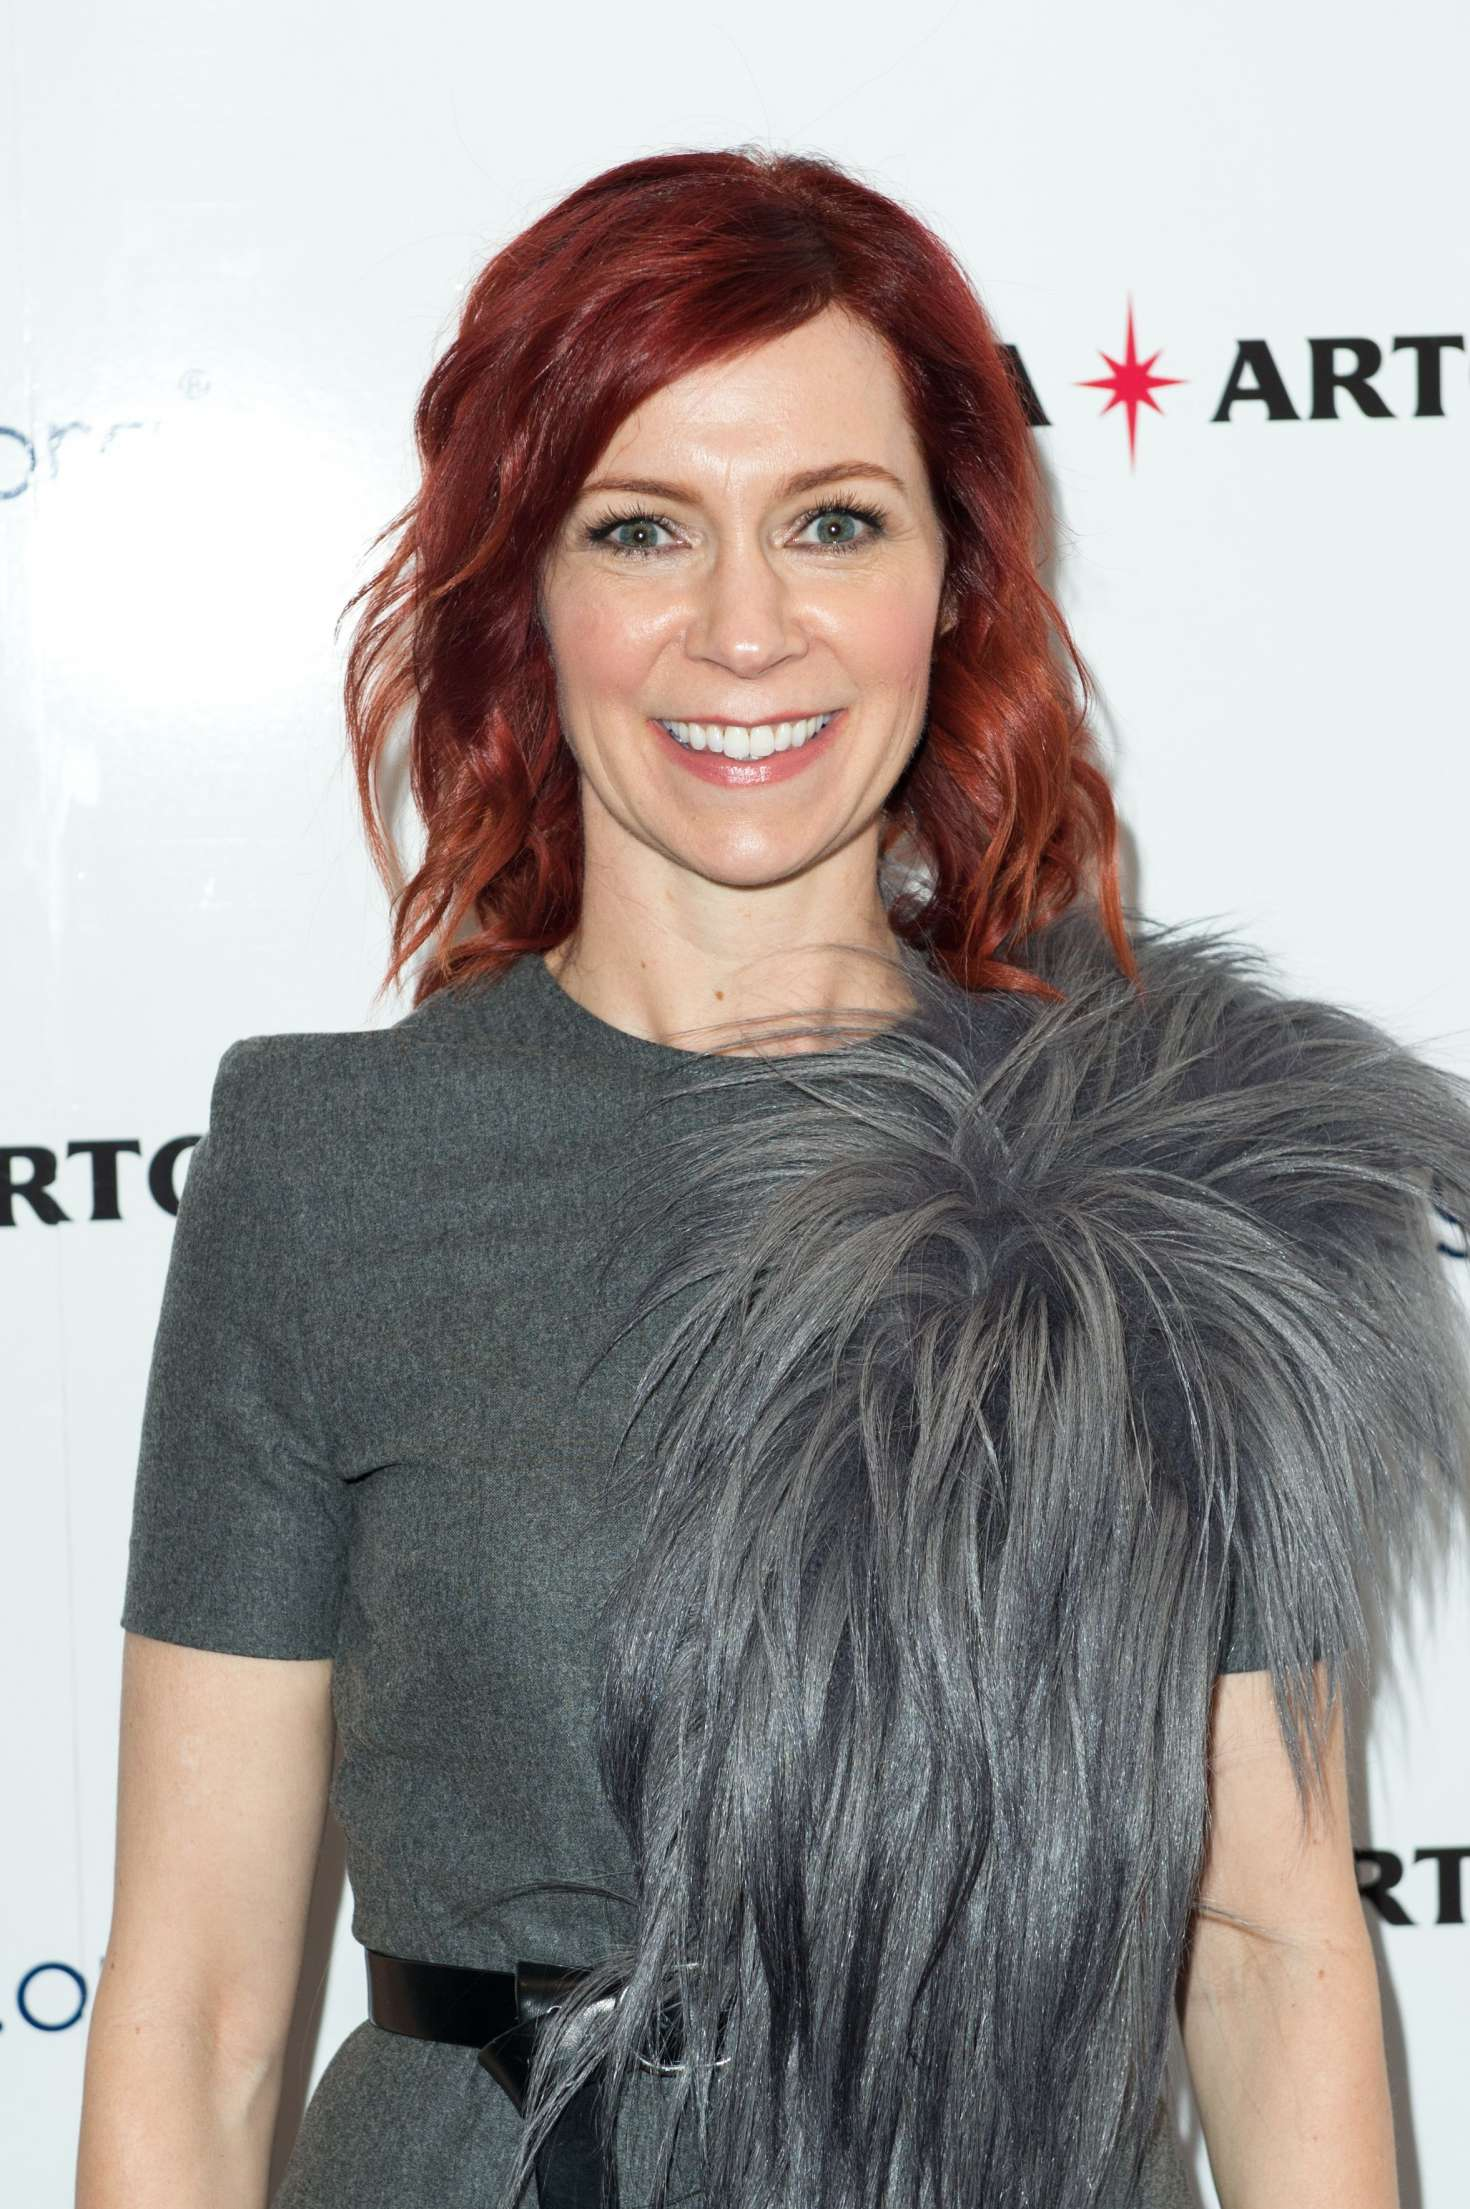 Carrie Preston nudes (18 pics) Video, YouTube, butt